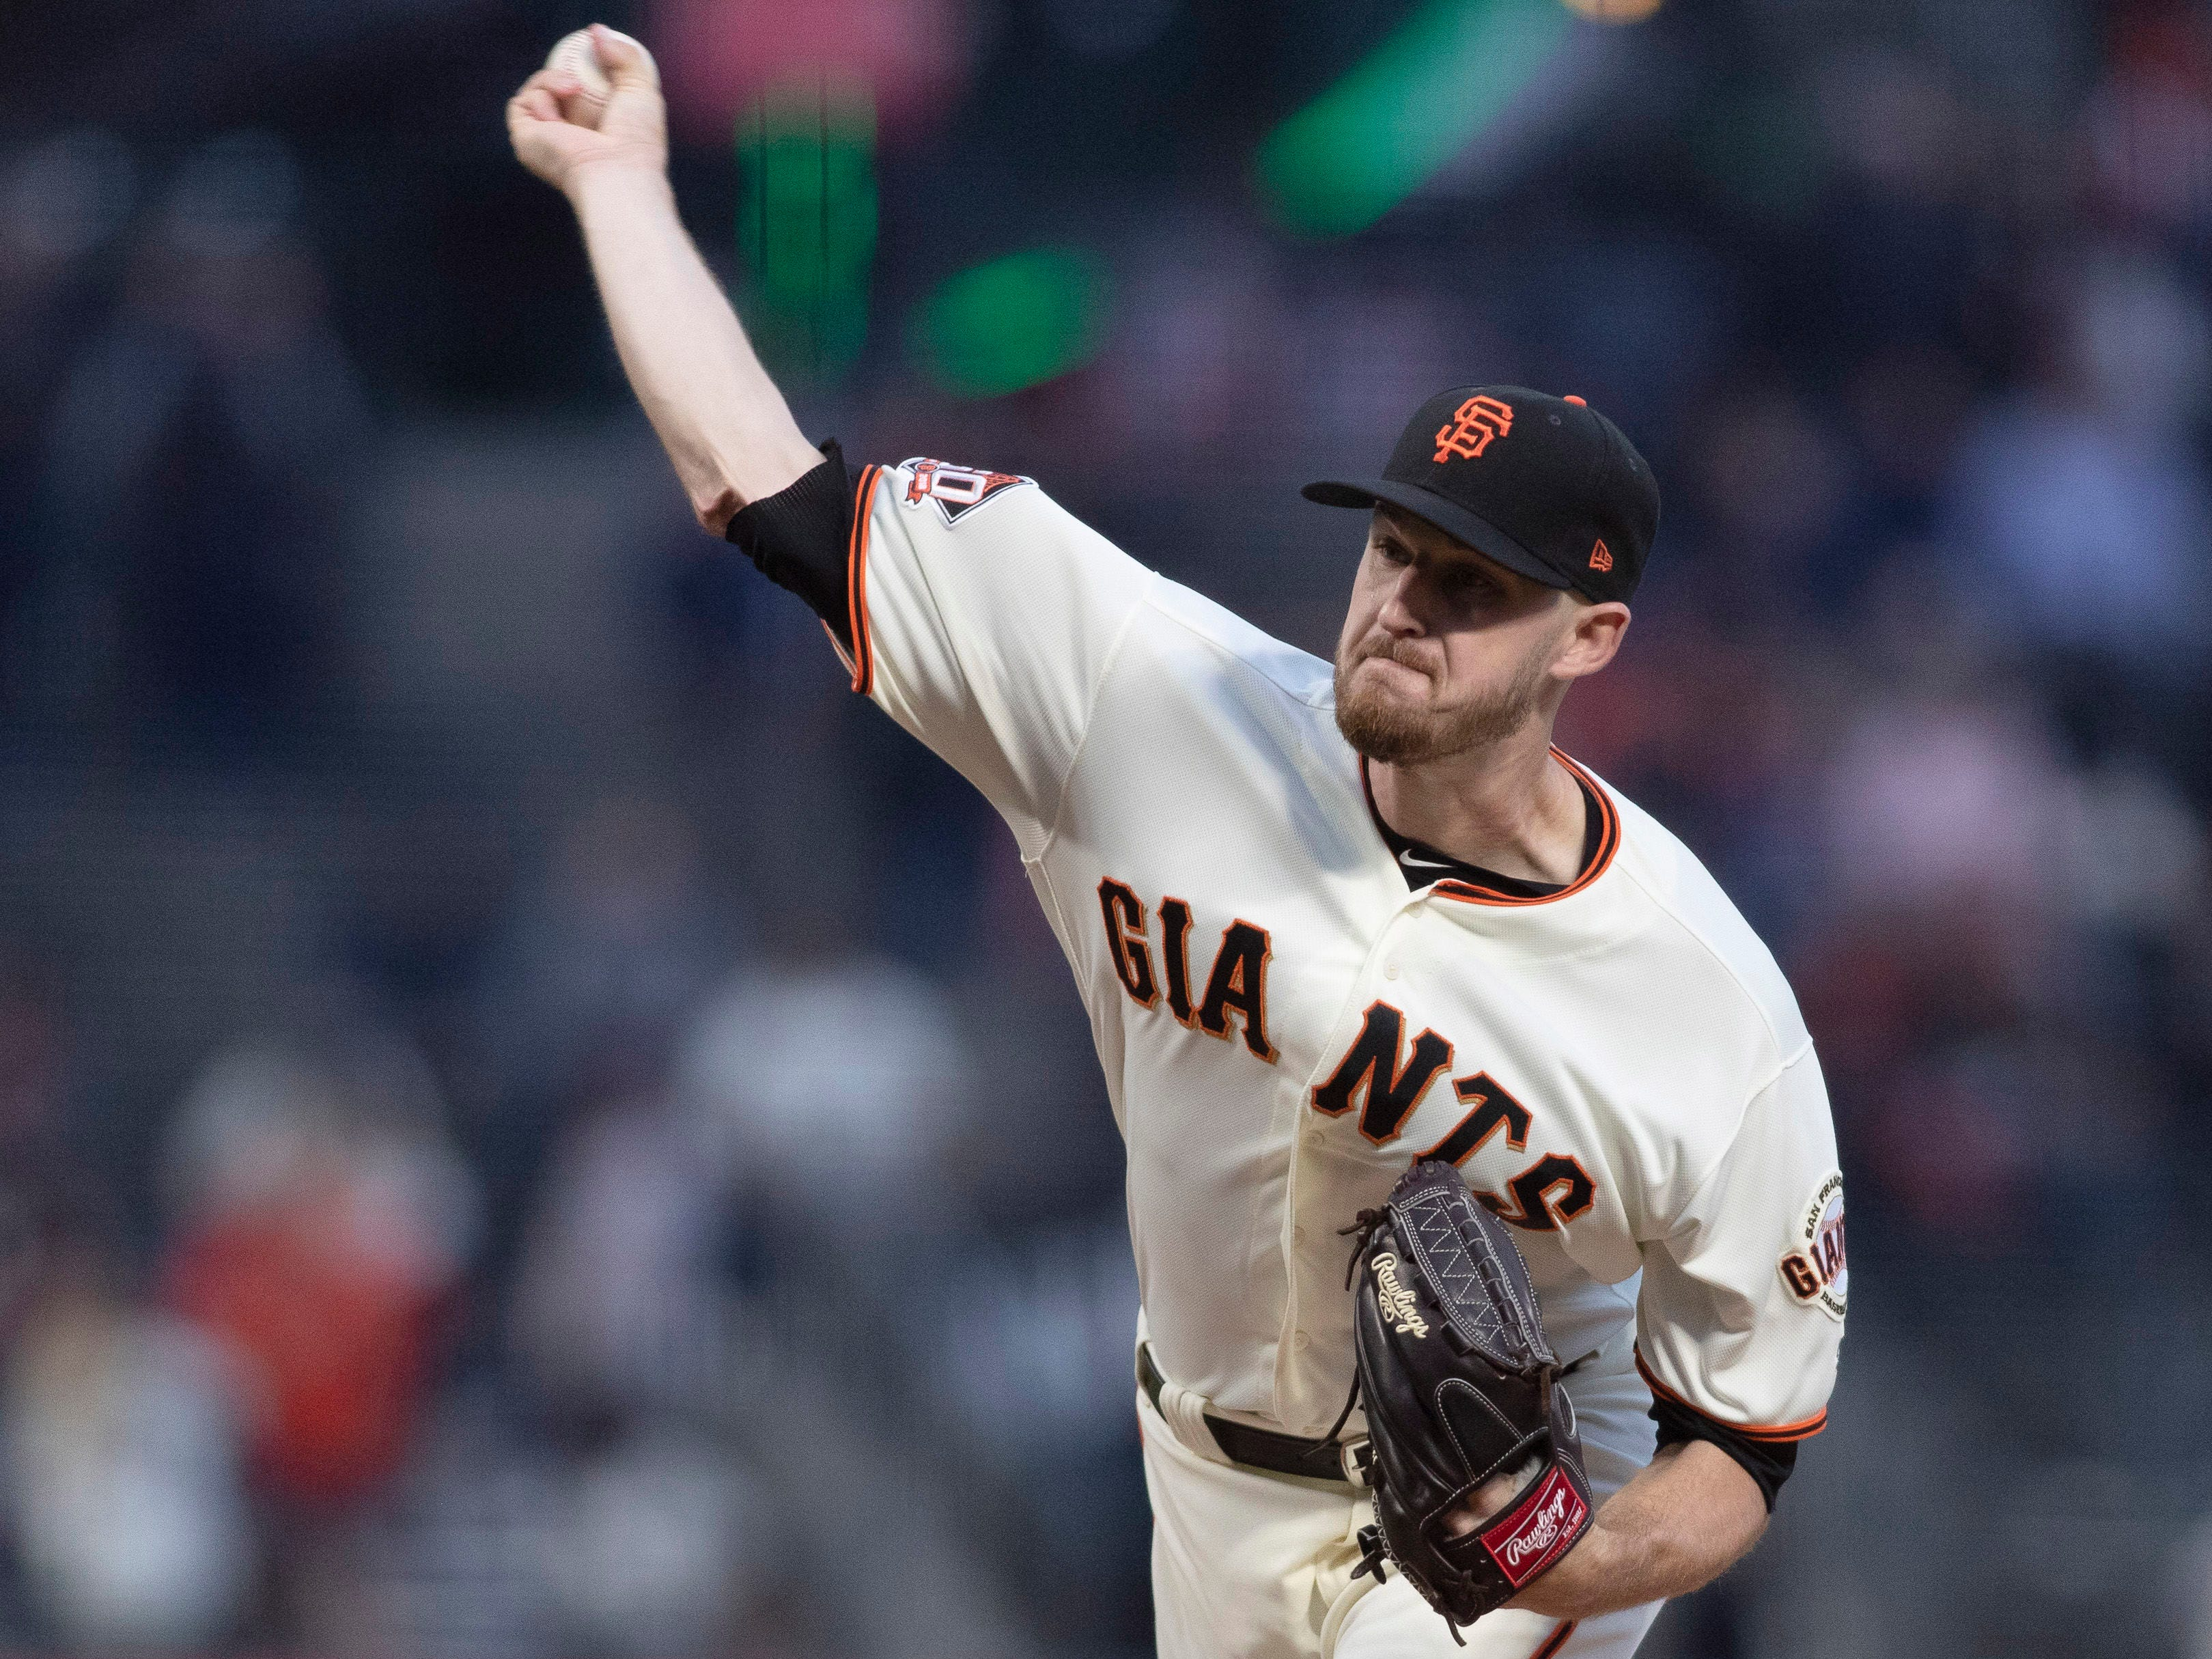 Aug 27, 2018; San Francisco, CA, USA; San Francisco Giants starting pitcher Chris Stratton (34) delivers a pitch during the first inning against the Arizona Diamondbacks at AT&T Park. Mandatory Credit: Neville E. Guard-USA TODAY Sports